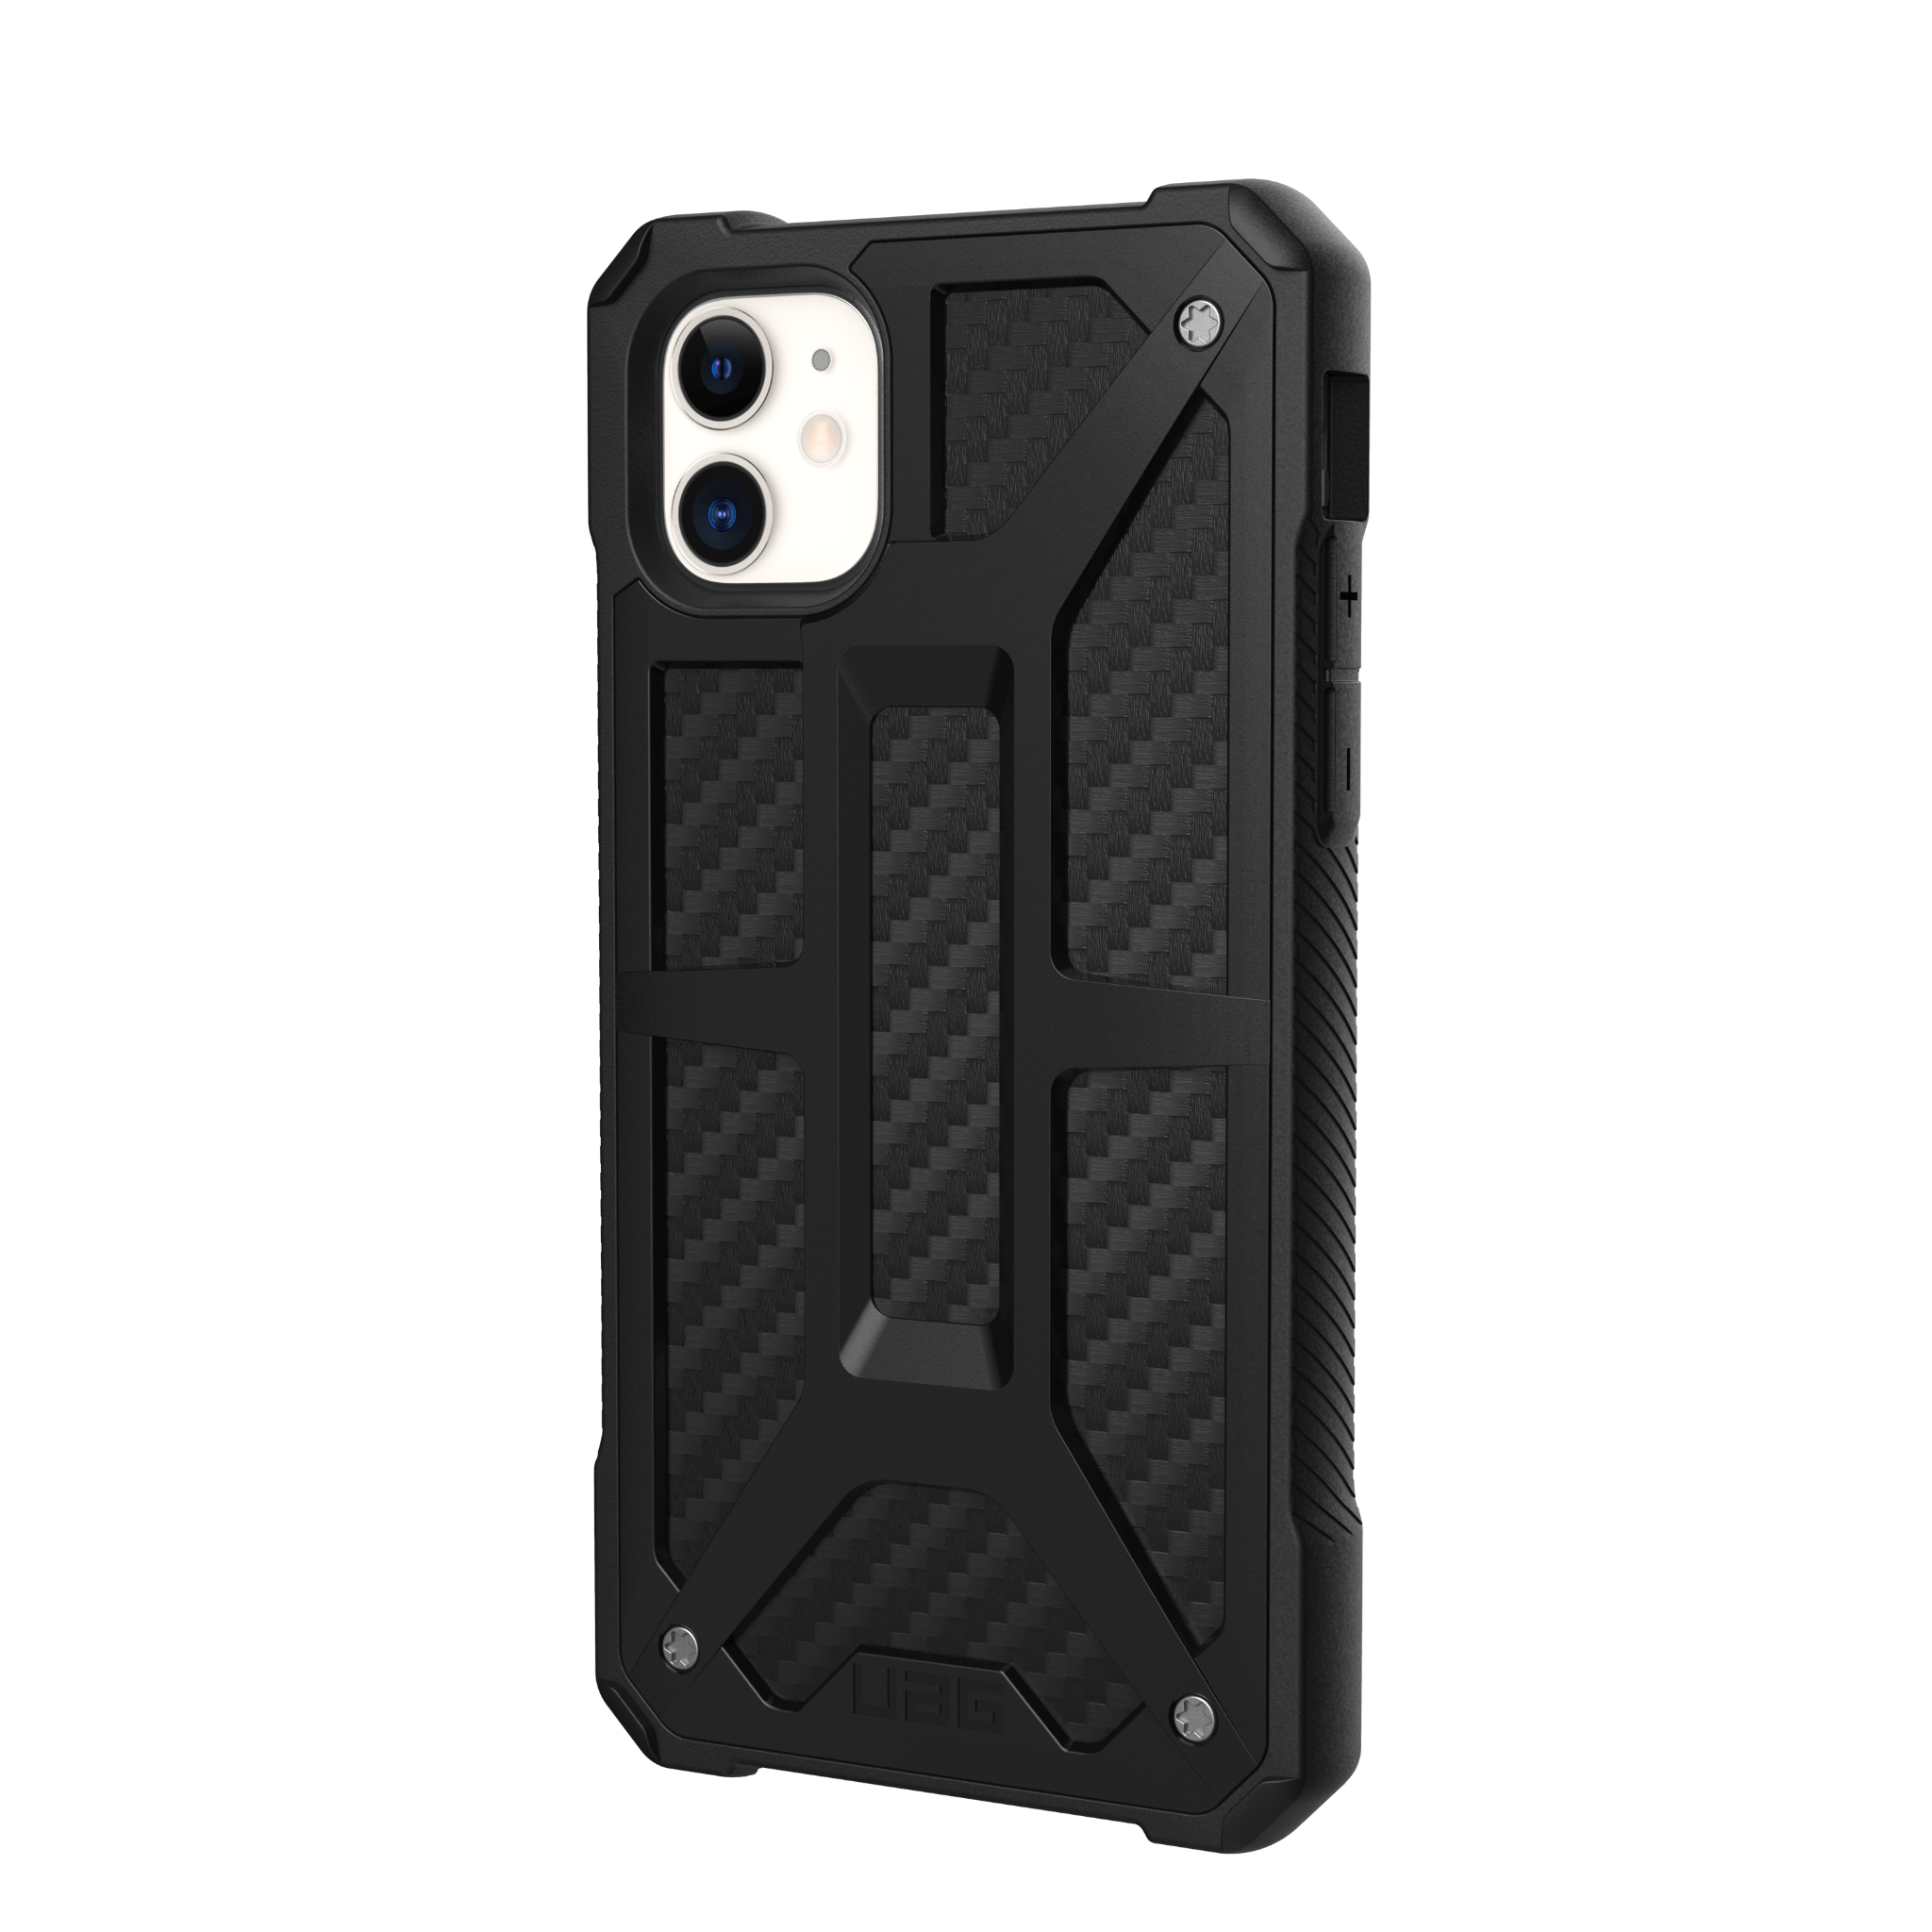 ỐP LƯNG UAG MONARCH CHO IPHONE 11 [6.1-INCH]